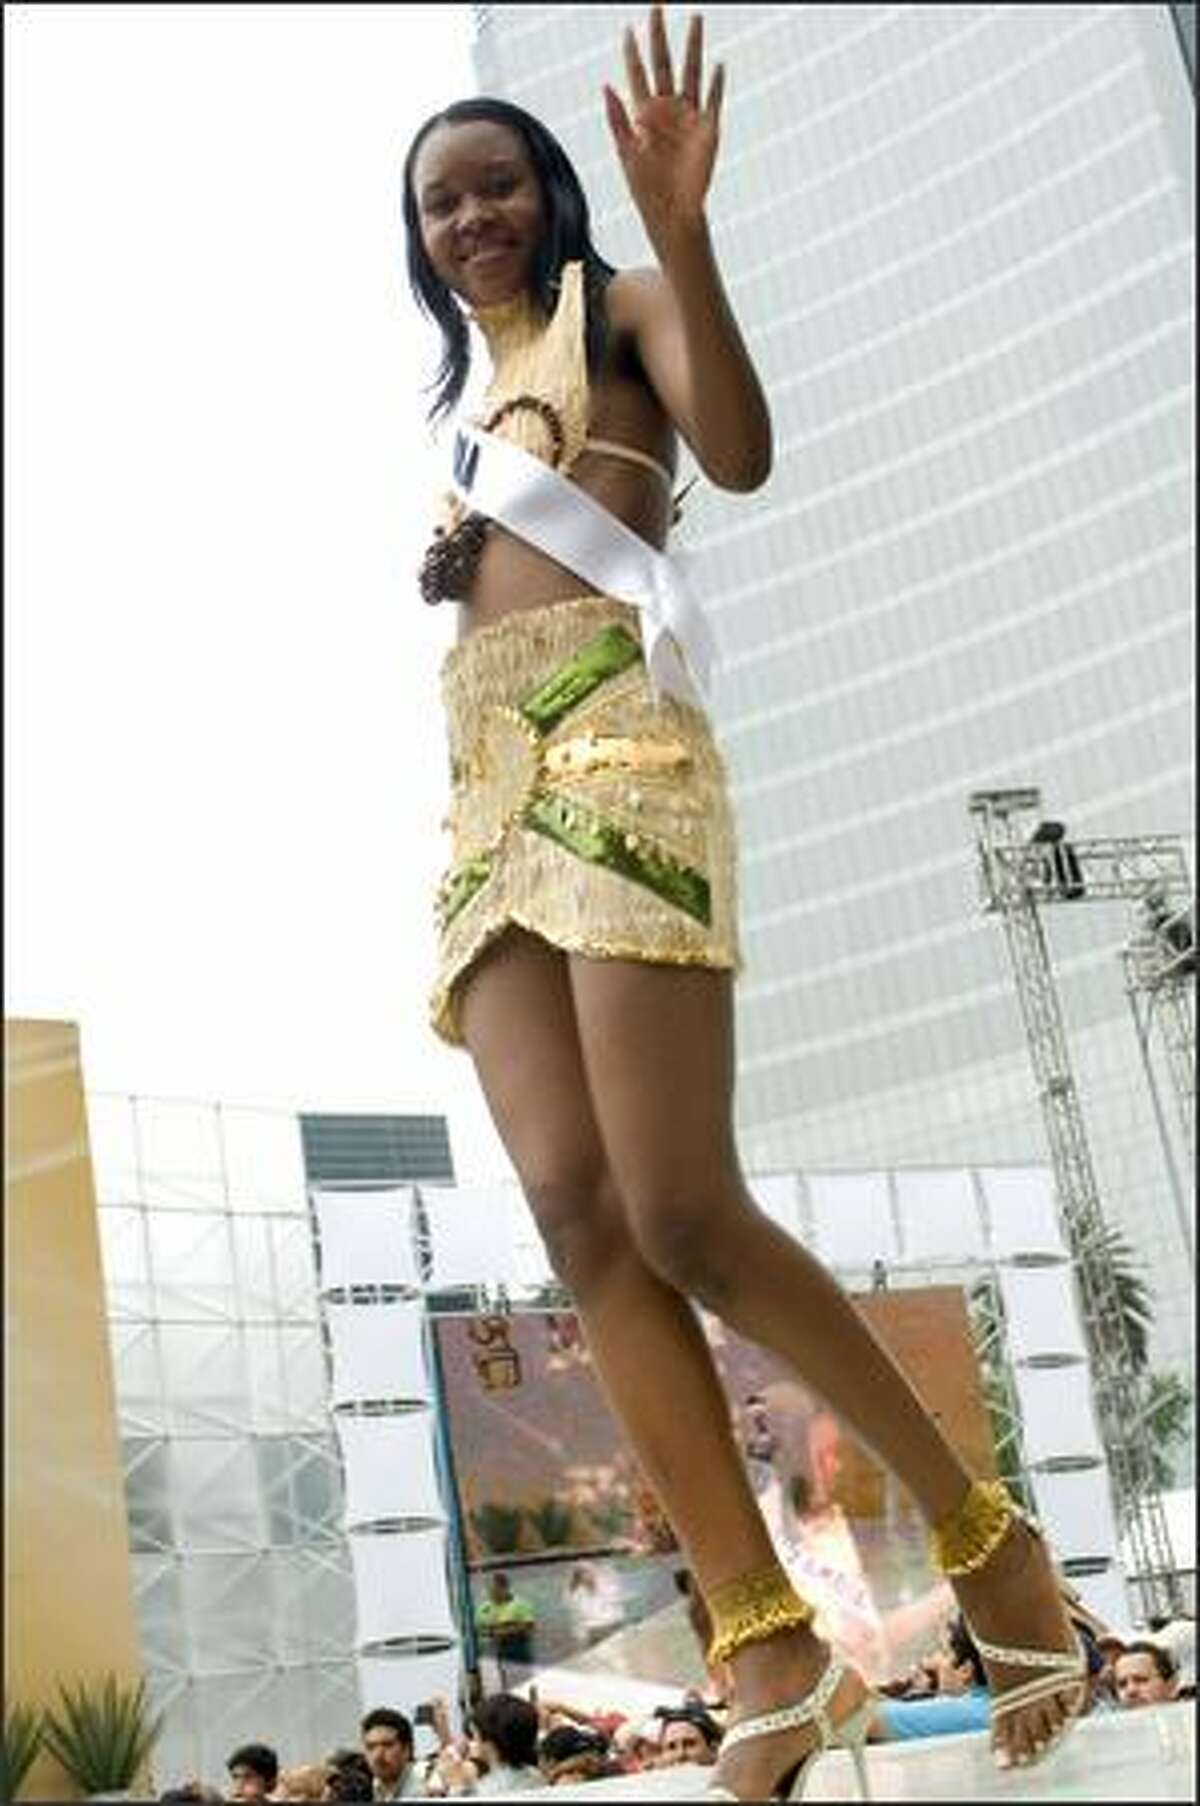 Rosemary Chileshe, Miss Zambia 2007.See more national costume photos in the May 20 daily gallery.